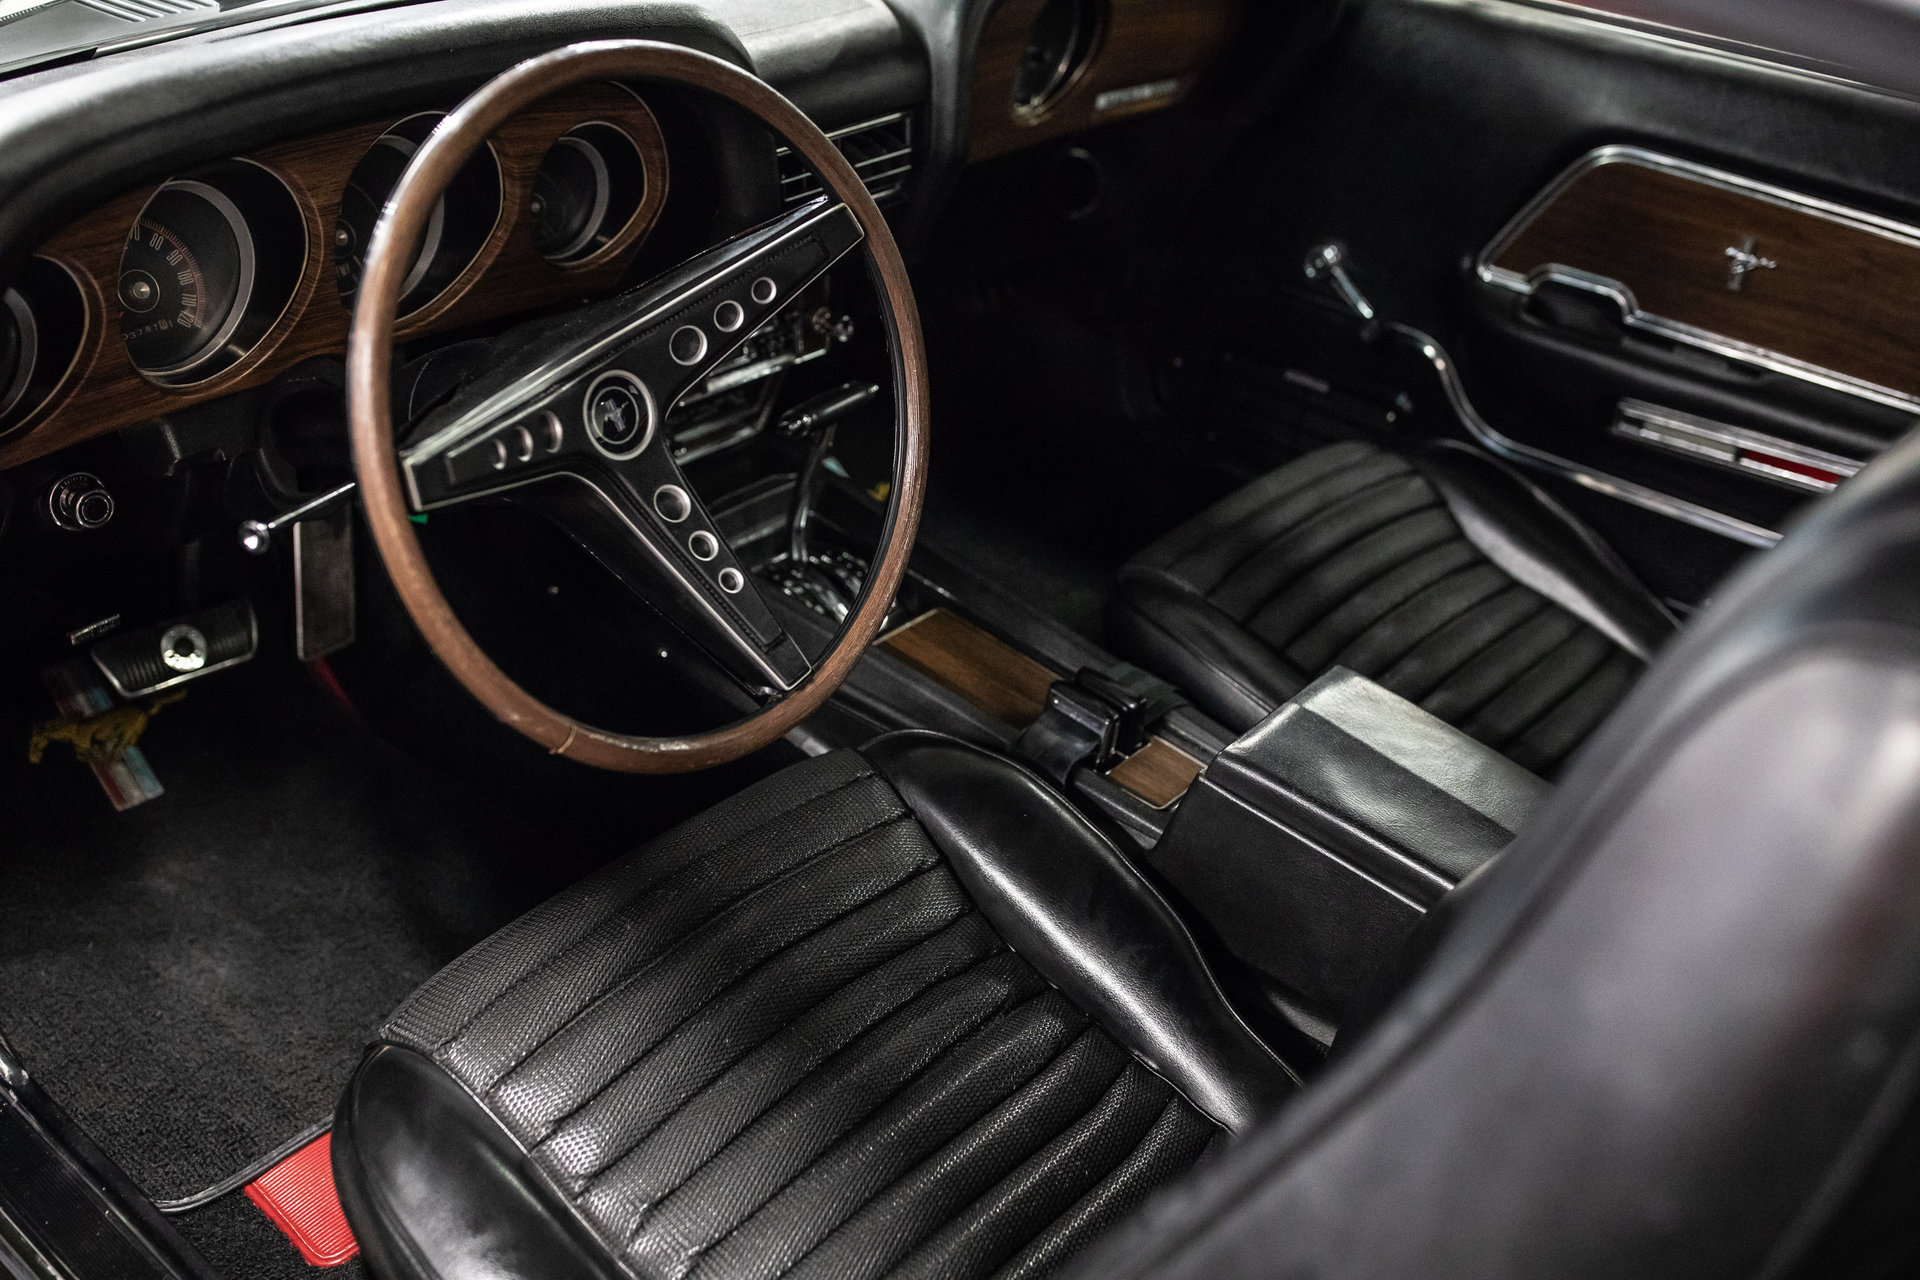 1969 Ford Mustang Gt Motor Cars